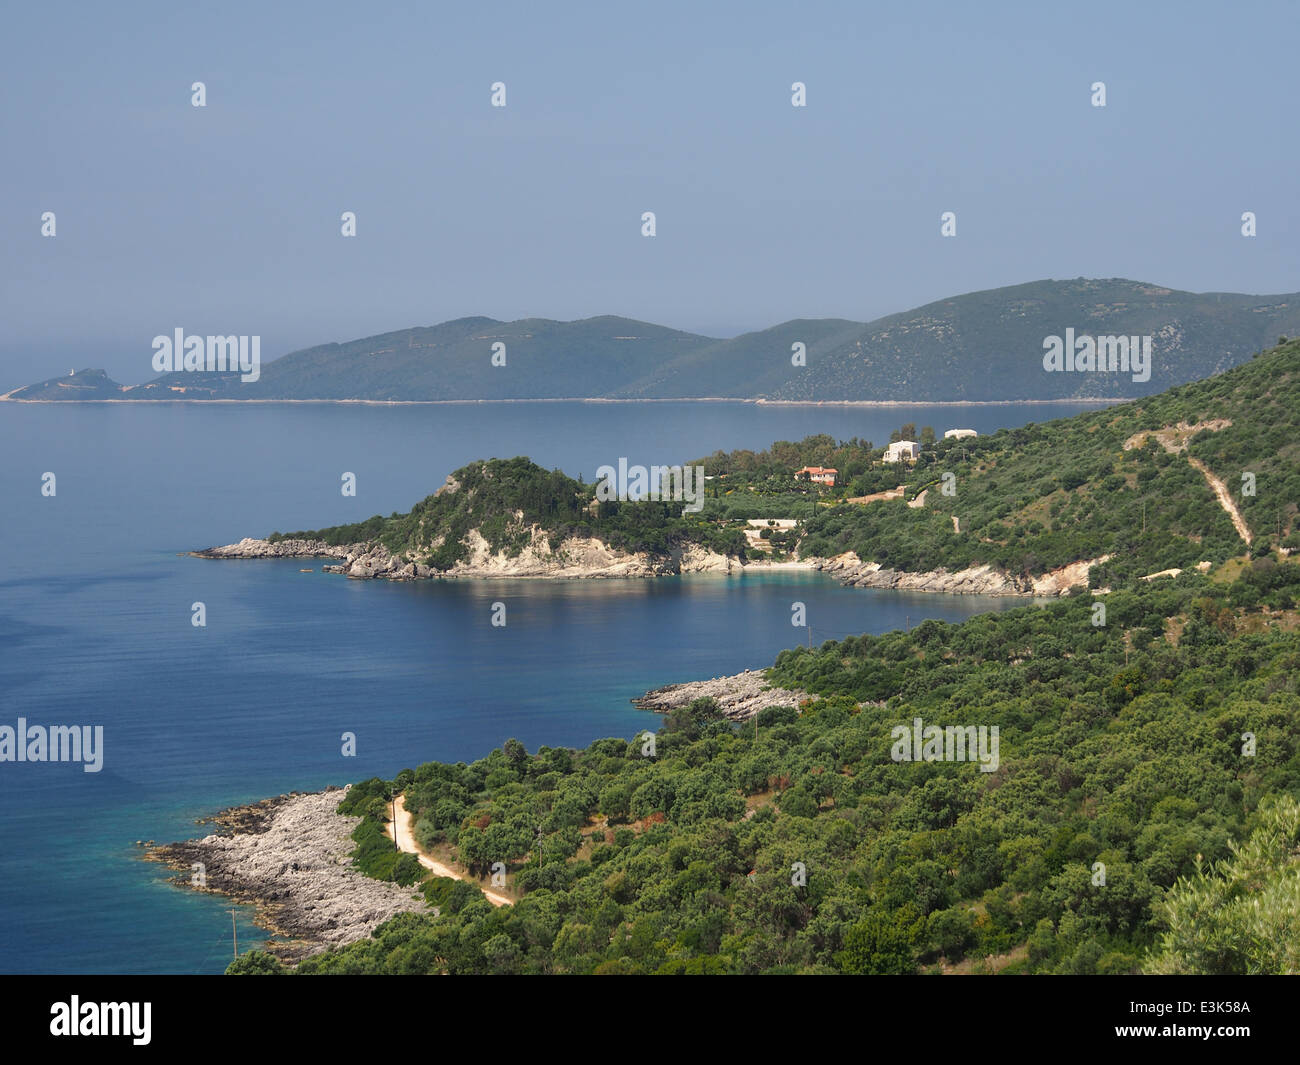 Photographed from Apollonii, 38.604173, 20.635765 - Stock Image